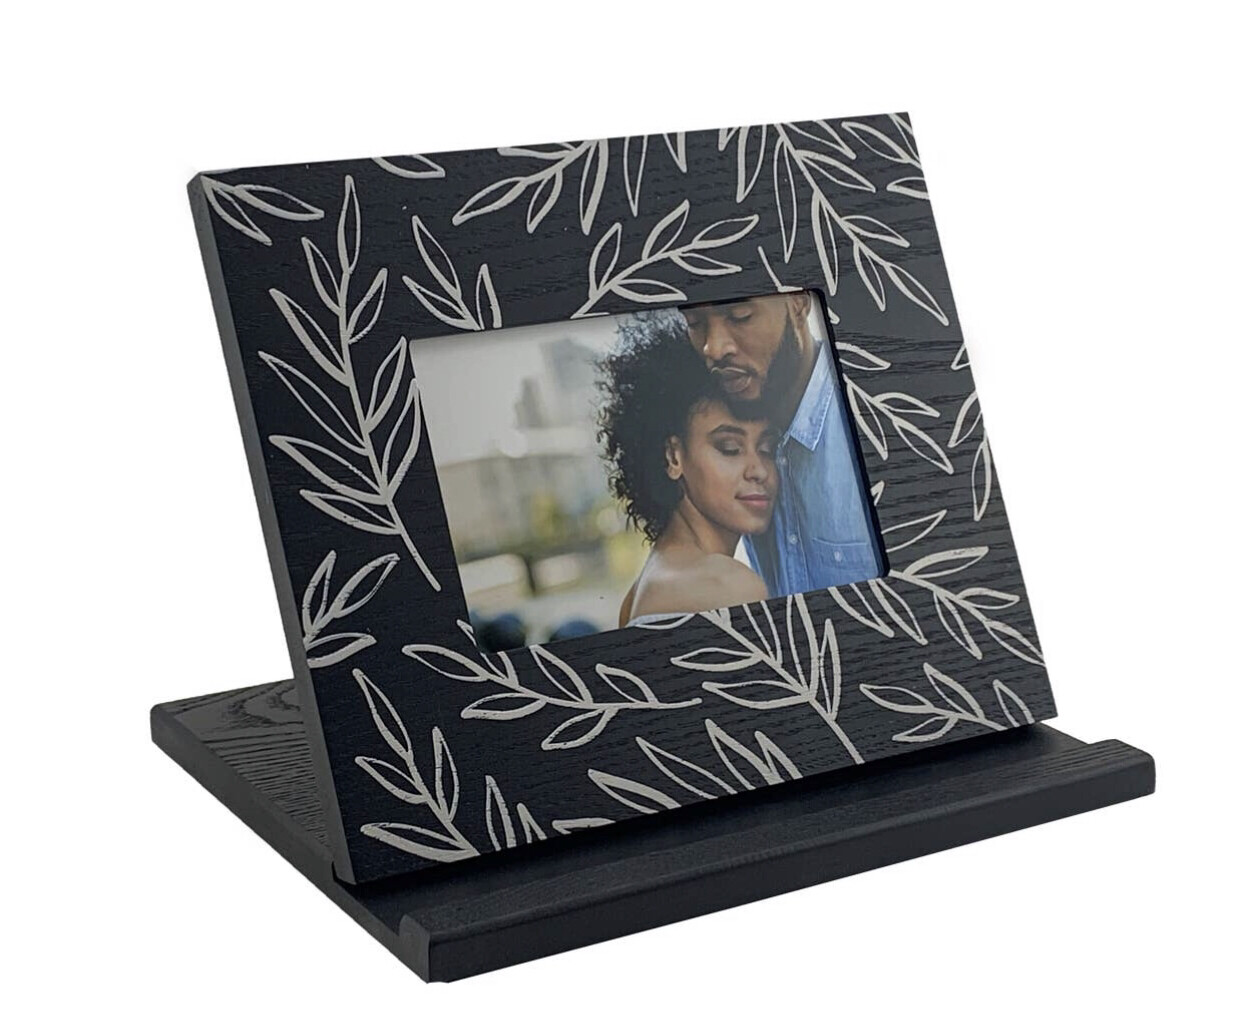 Tranquility Tablet Stand/Frame